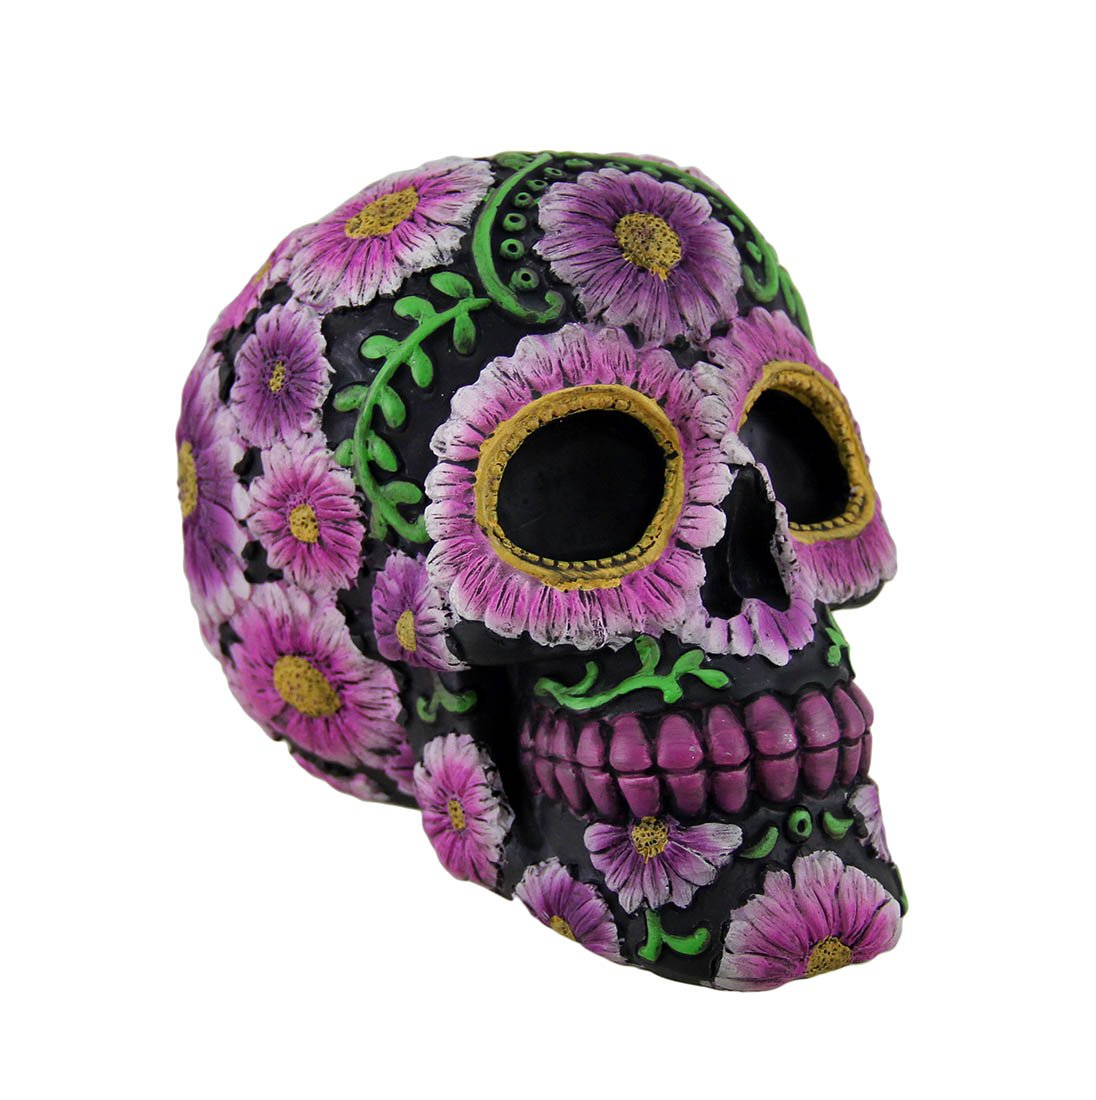 Zeckos Resin Toy Banks Floral Day of The Dead Black and Pink Sugar Skull Coin Bank 5.25 X 4.25 X 3.75 Inches Black